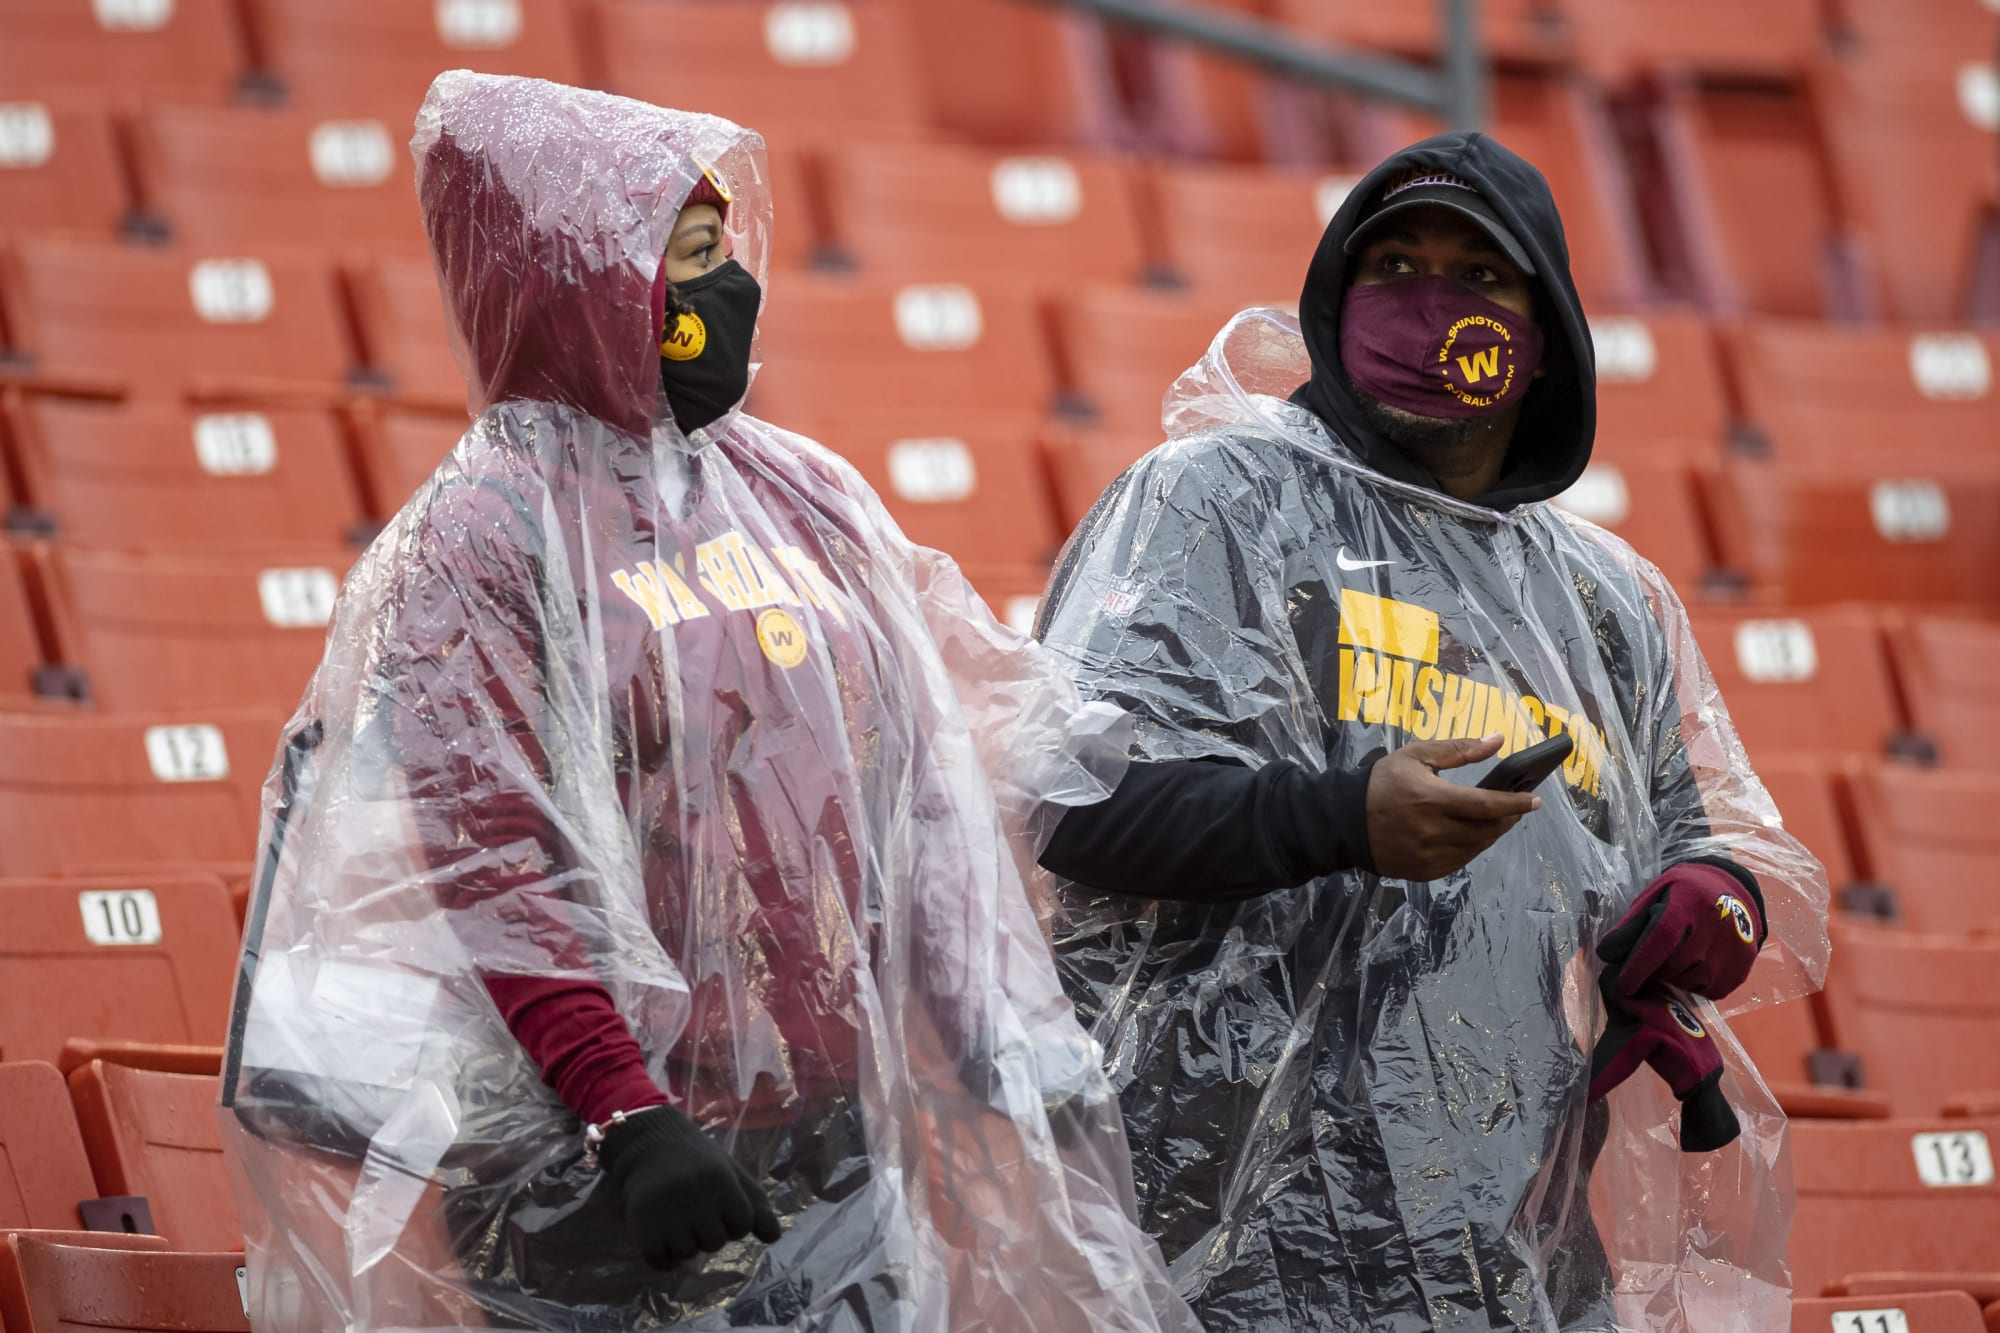 Washington fans get covered in sewage in disgusting video